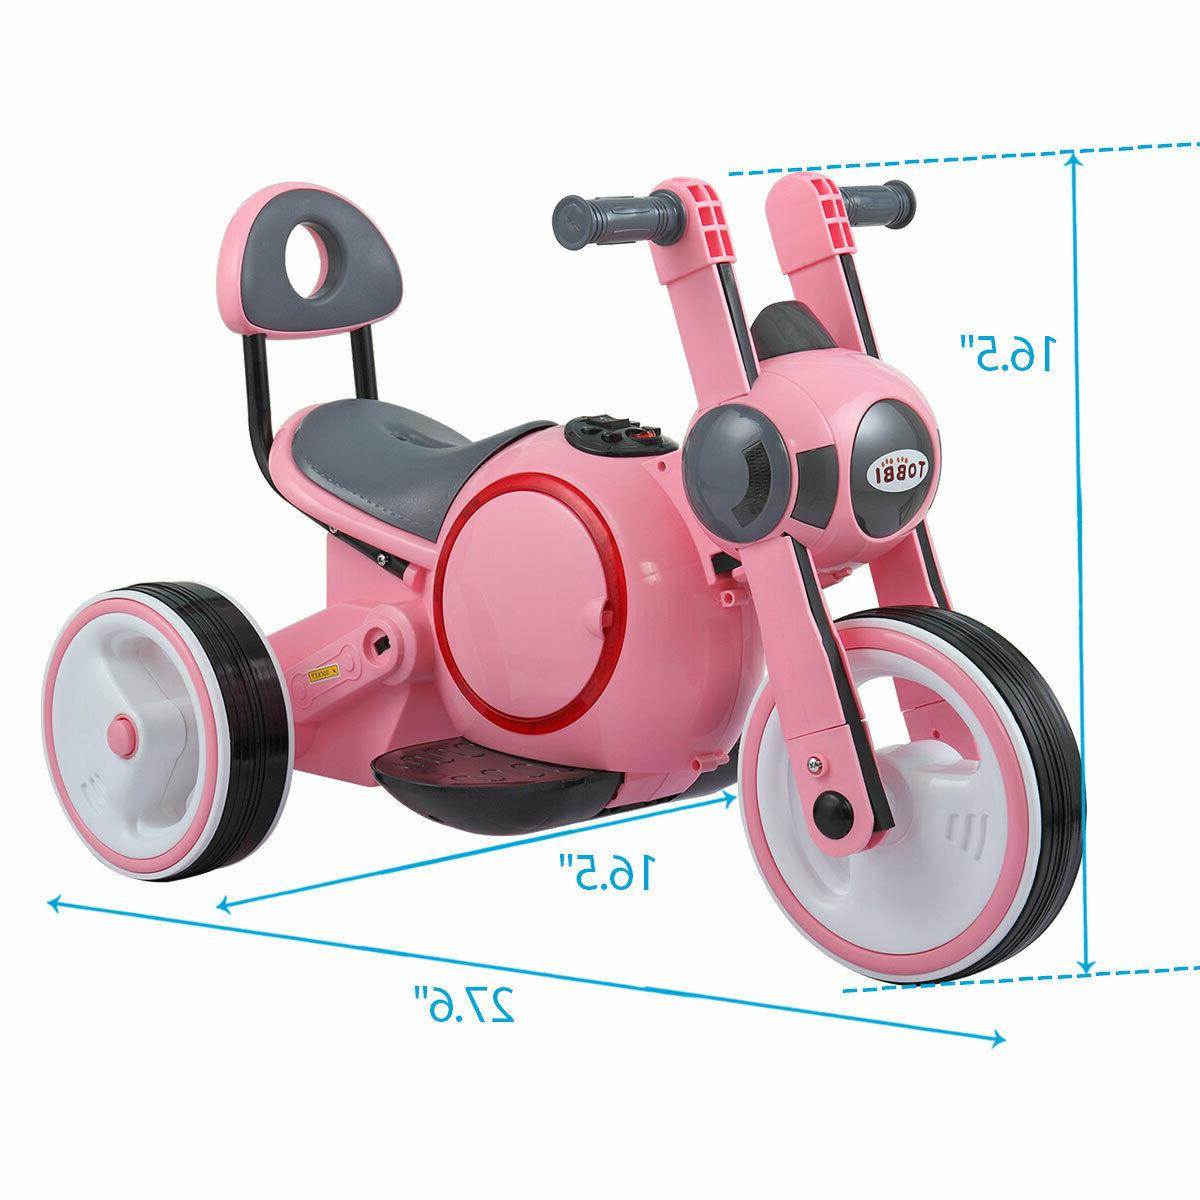 6V Kids On Motorcycle Toy Battery Powered w/Training Wheels